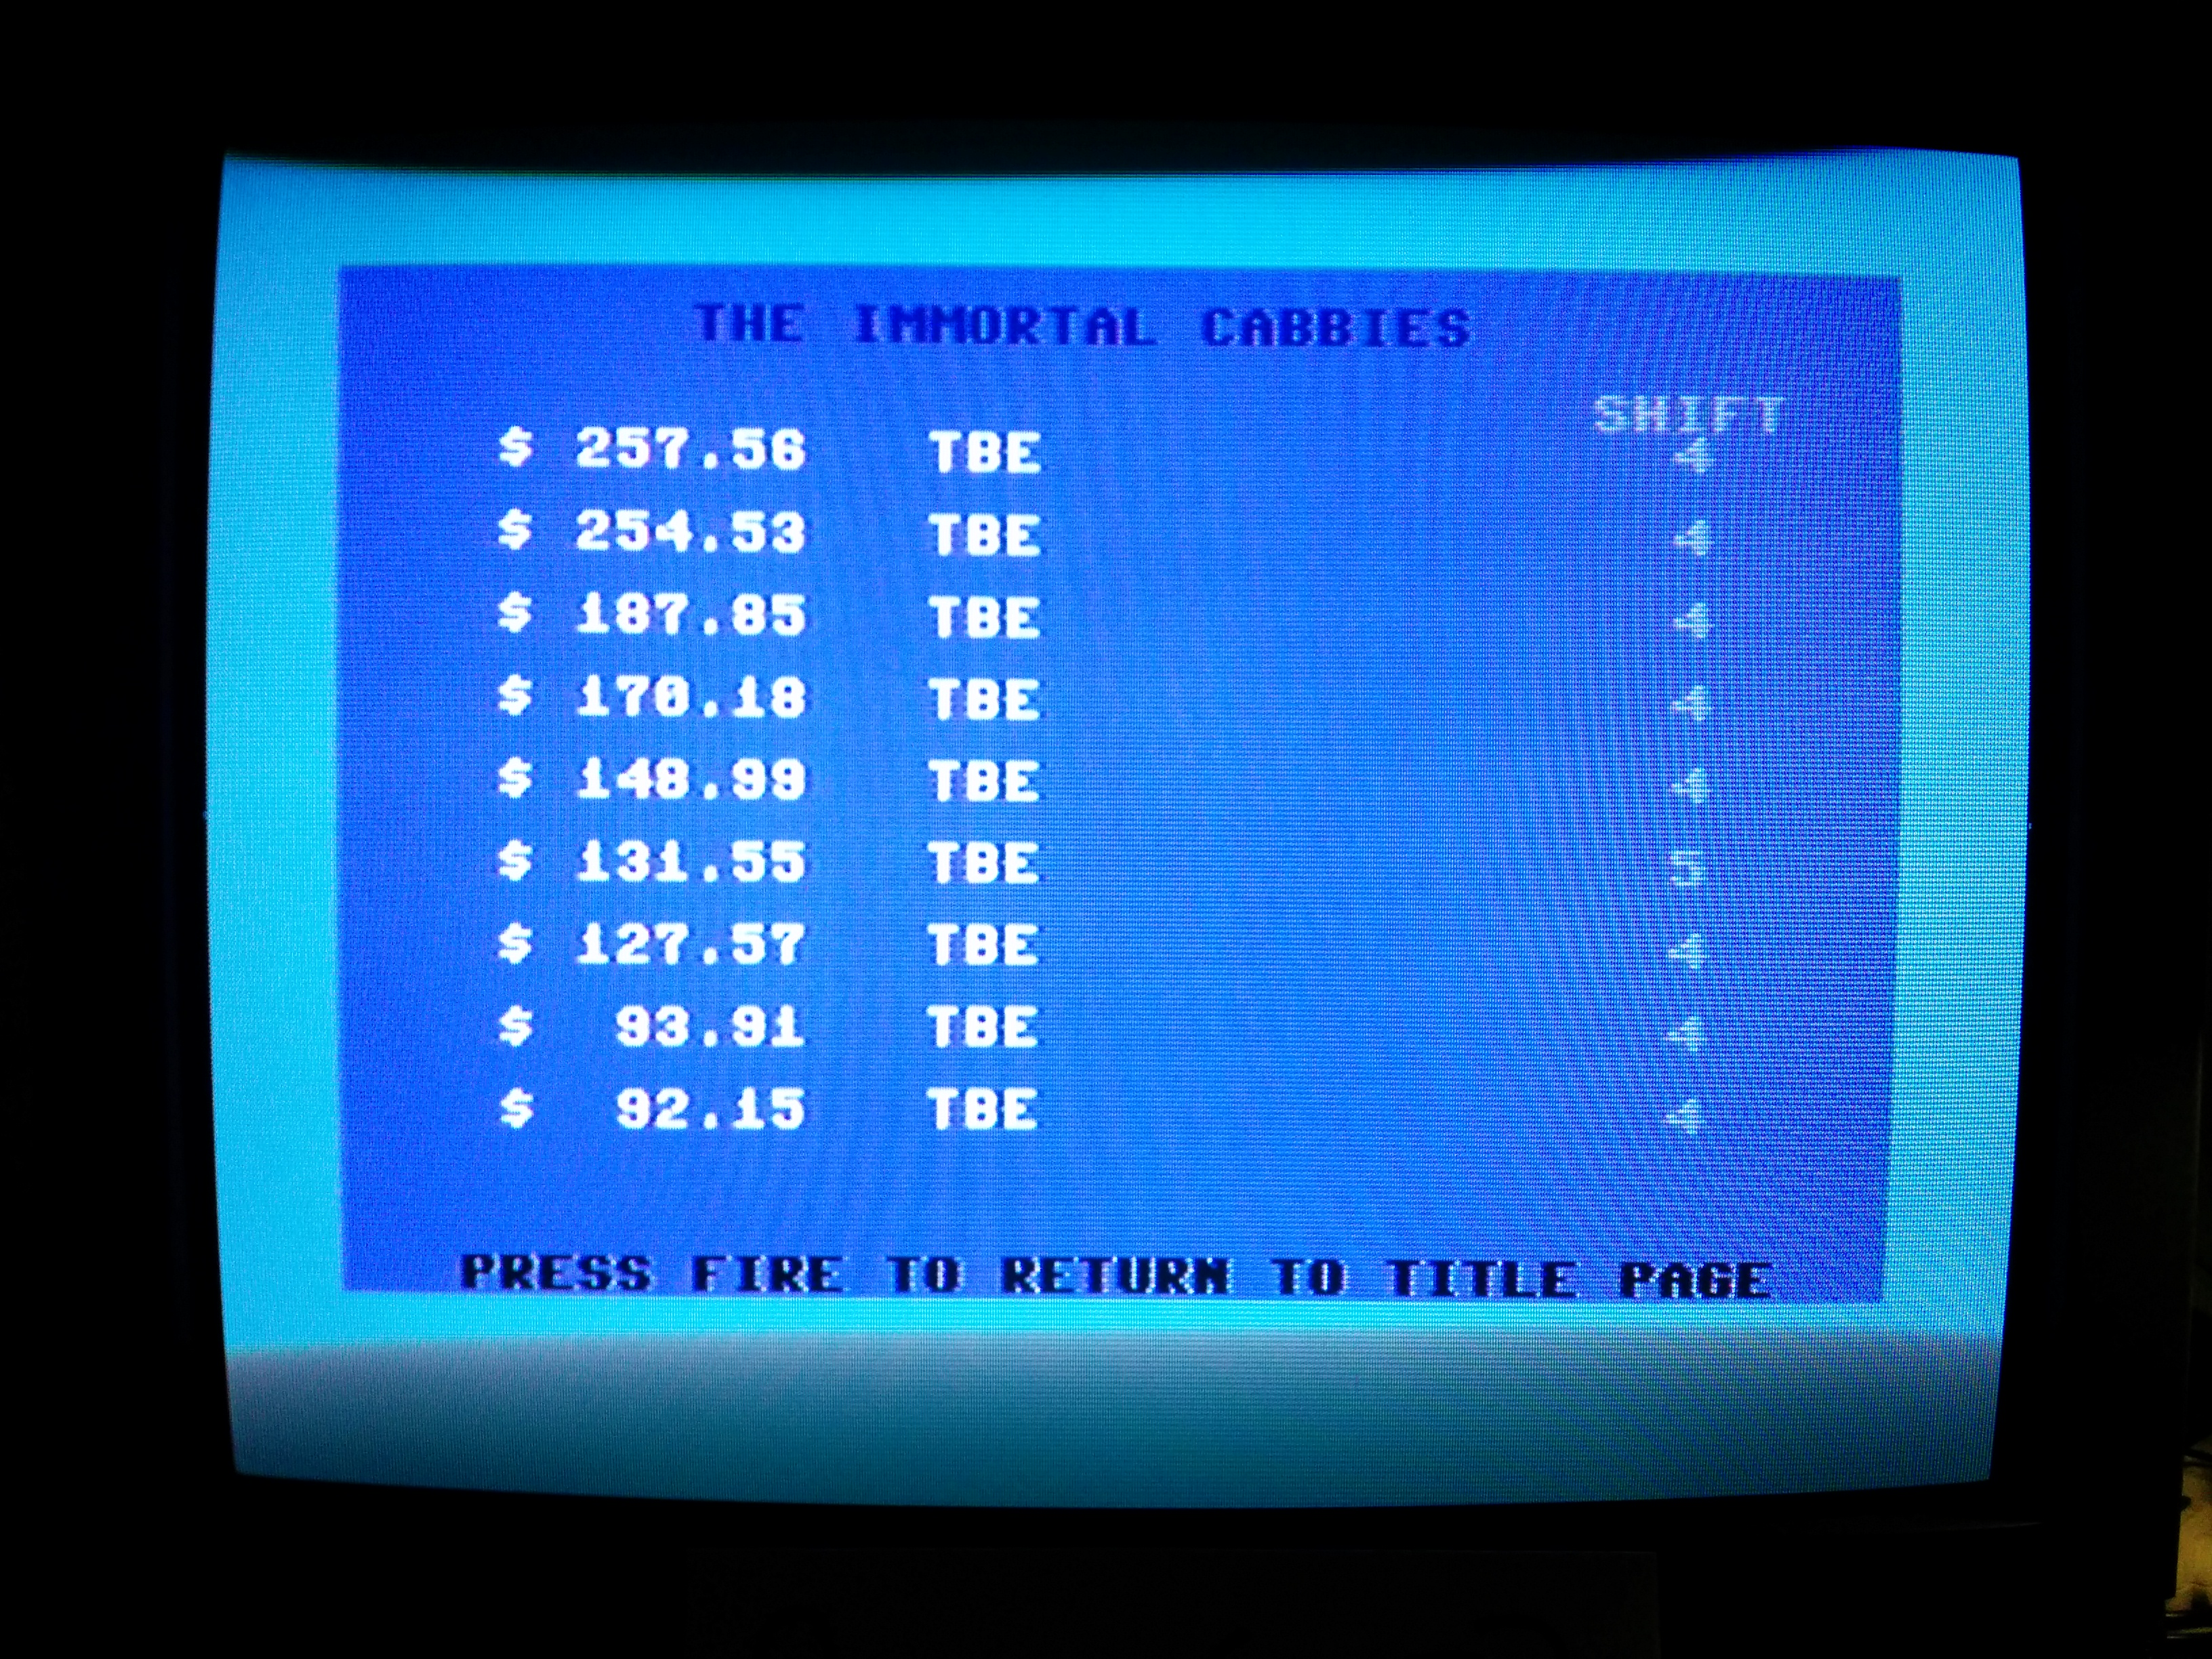 Sixx: Space Taxi (Commodore 64) 257 points on 2014-04-15 17:22:22